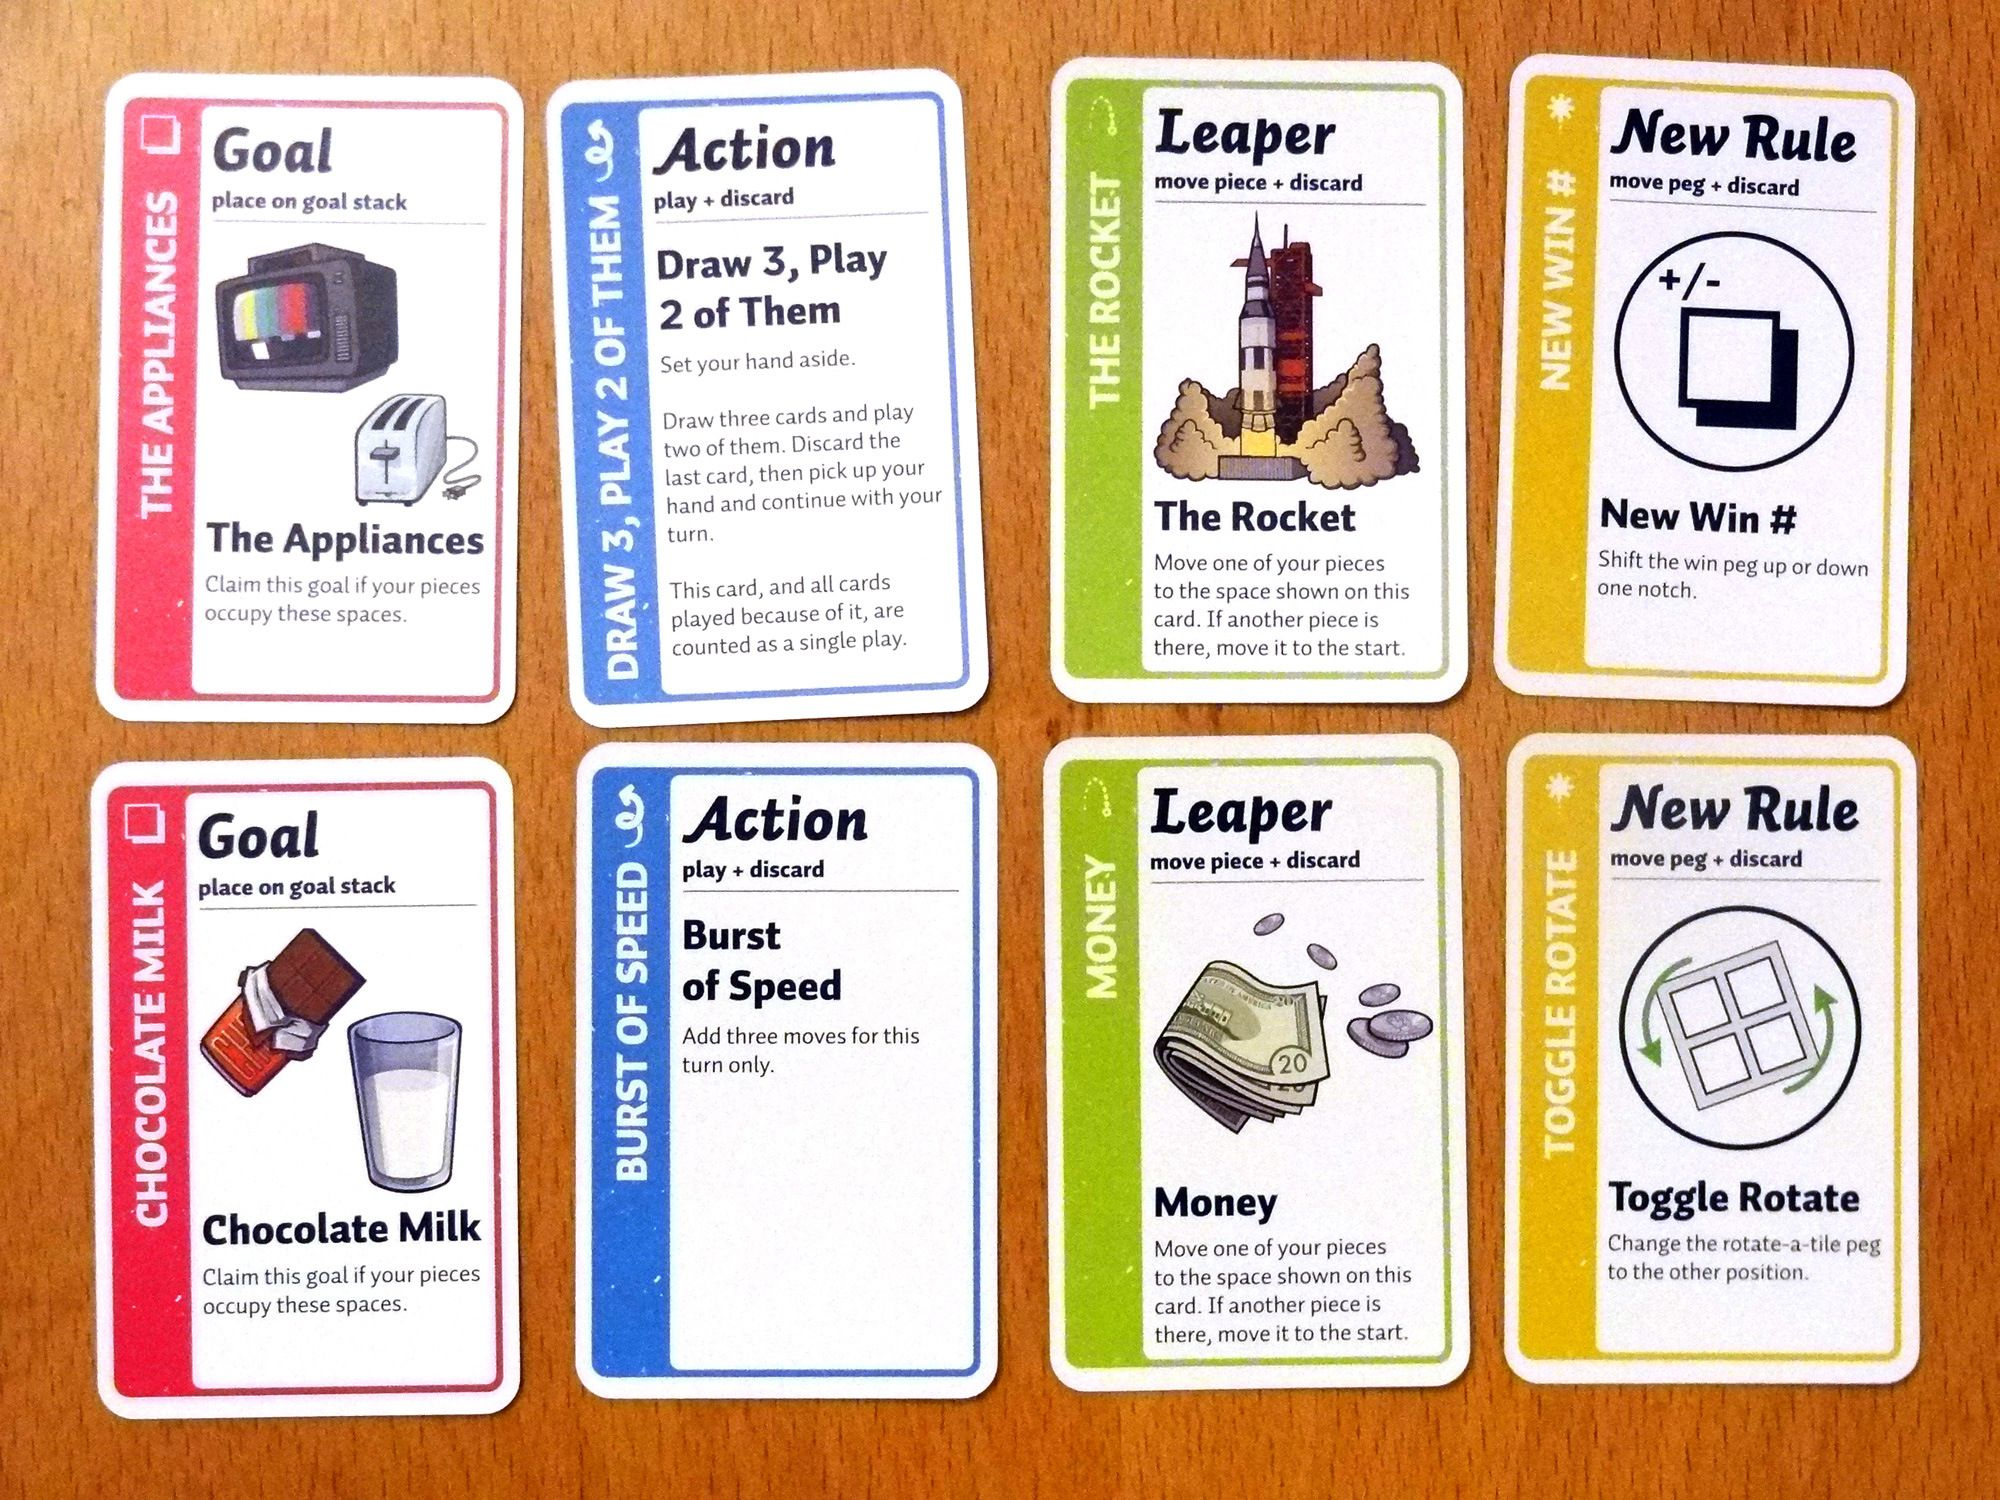 Fluxx The Board Game Geekdad Game Card Design Card Games Game Design